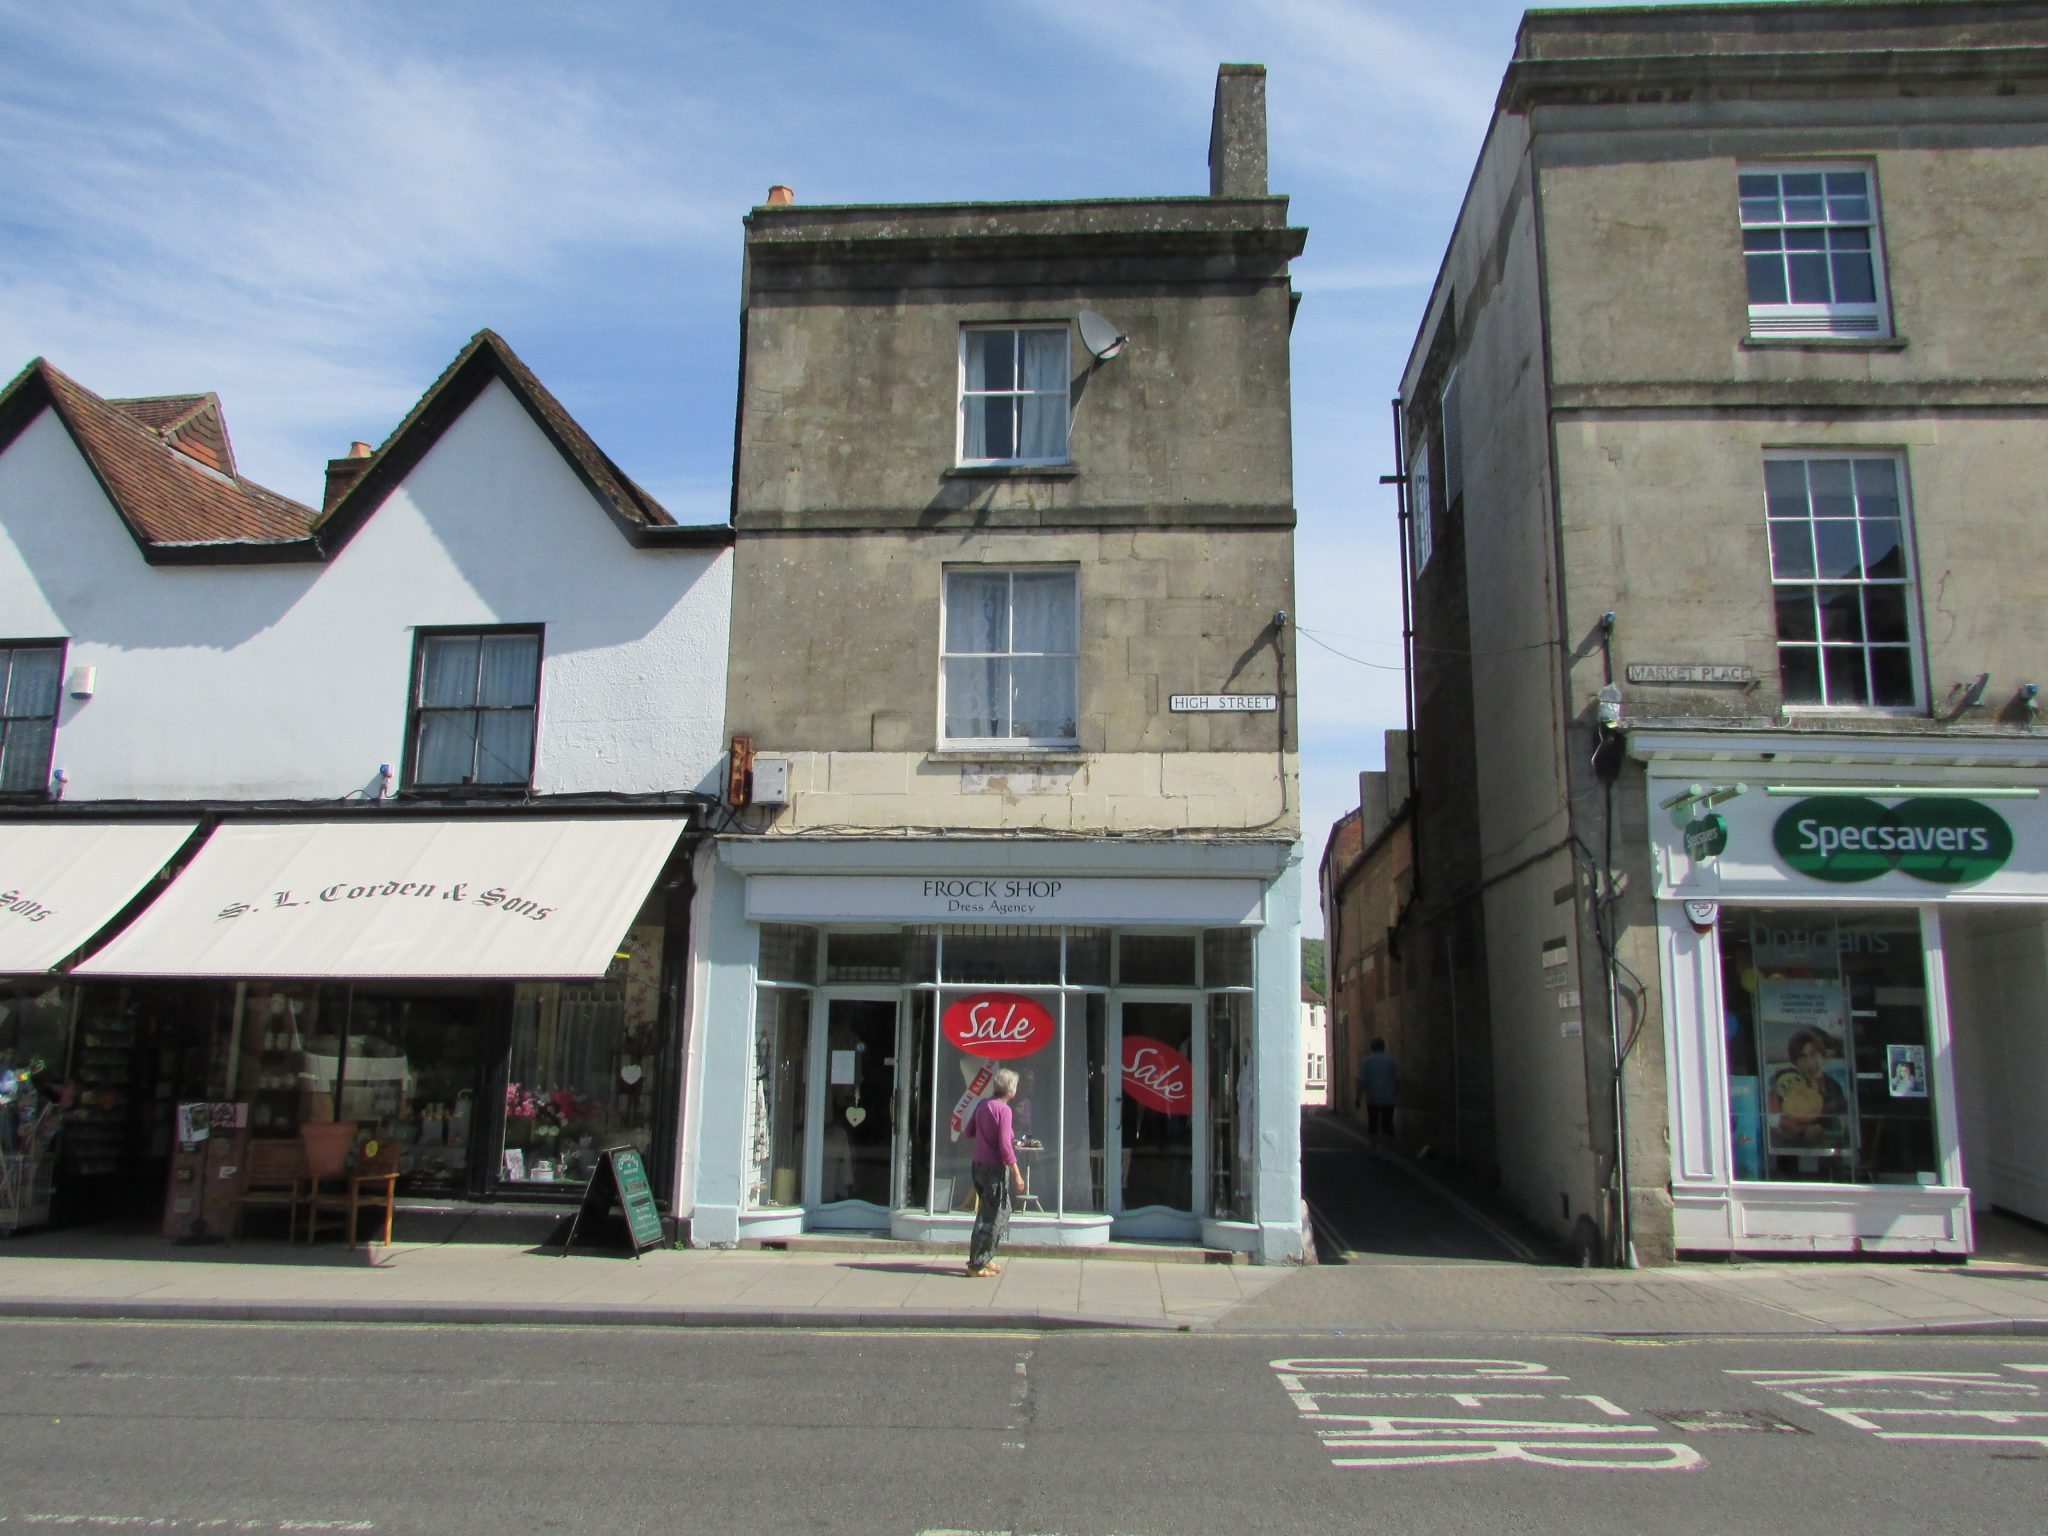 Property to rent, property to let, Warminster, George Street, John Loftus Property Centre